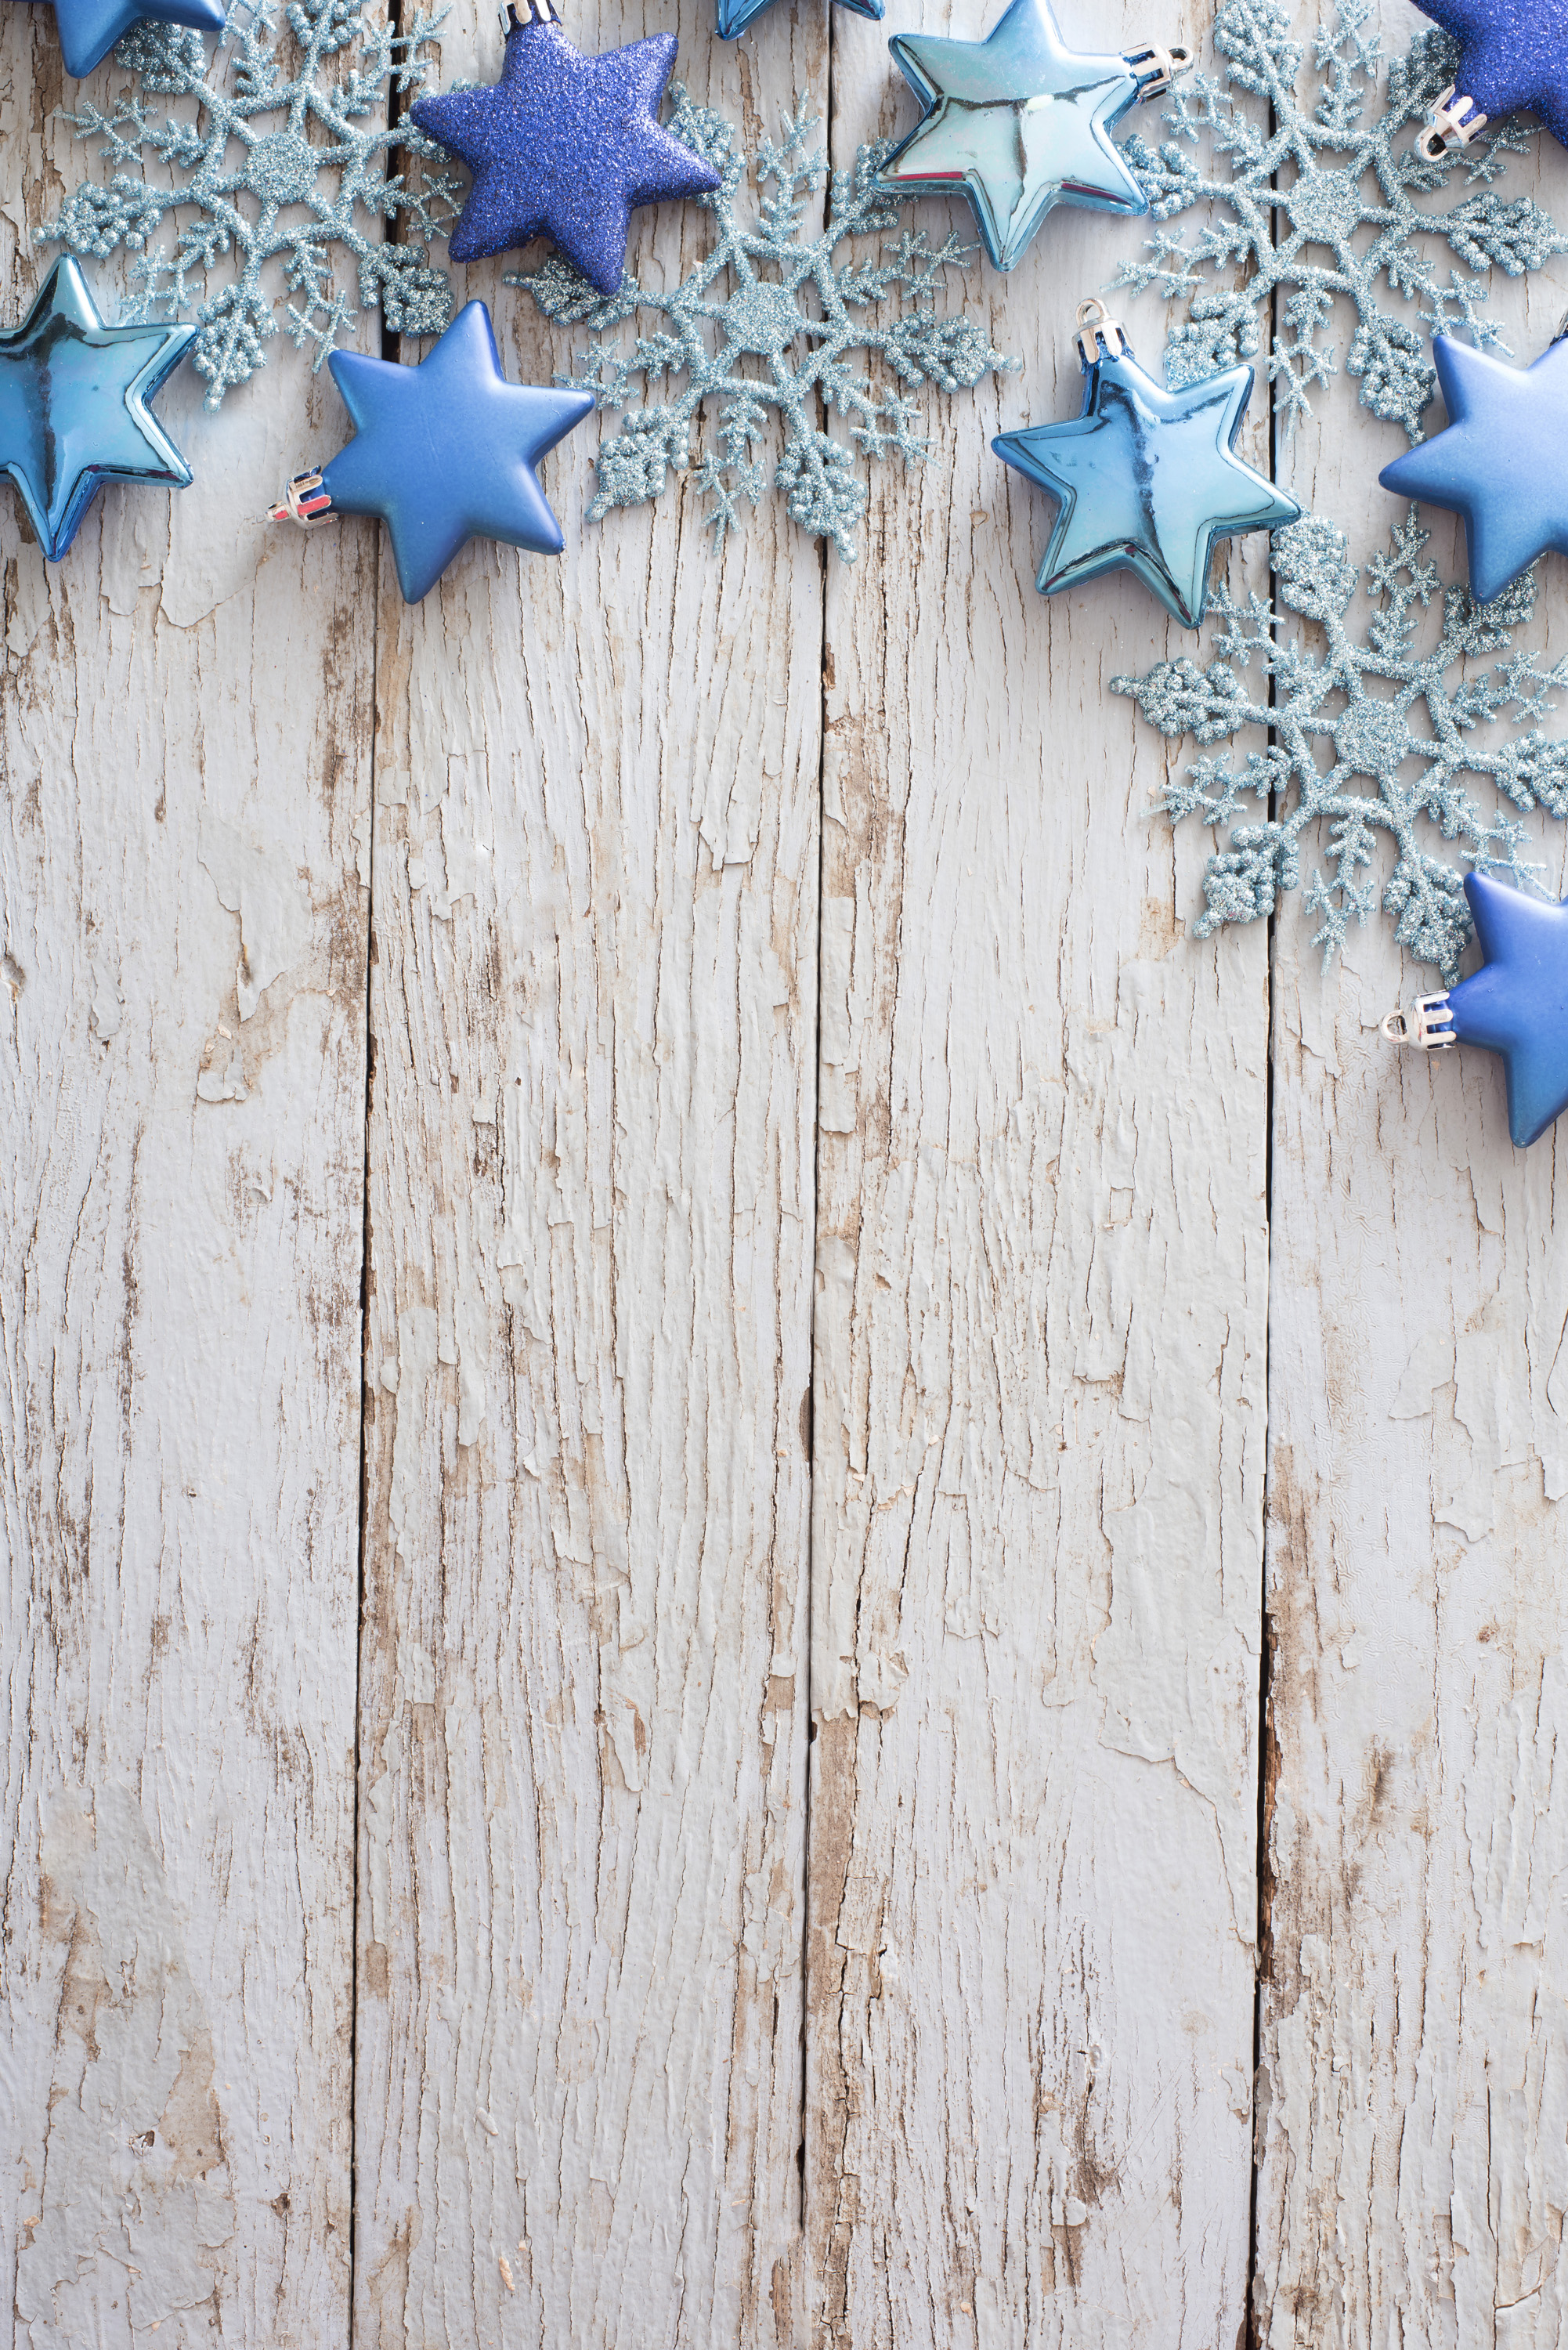 Border Of Blue Christmas Ornaments With Glitter Snowflakes And Stars On Rustic White Wood Cracks